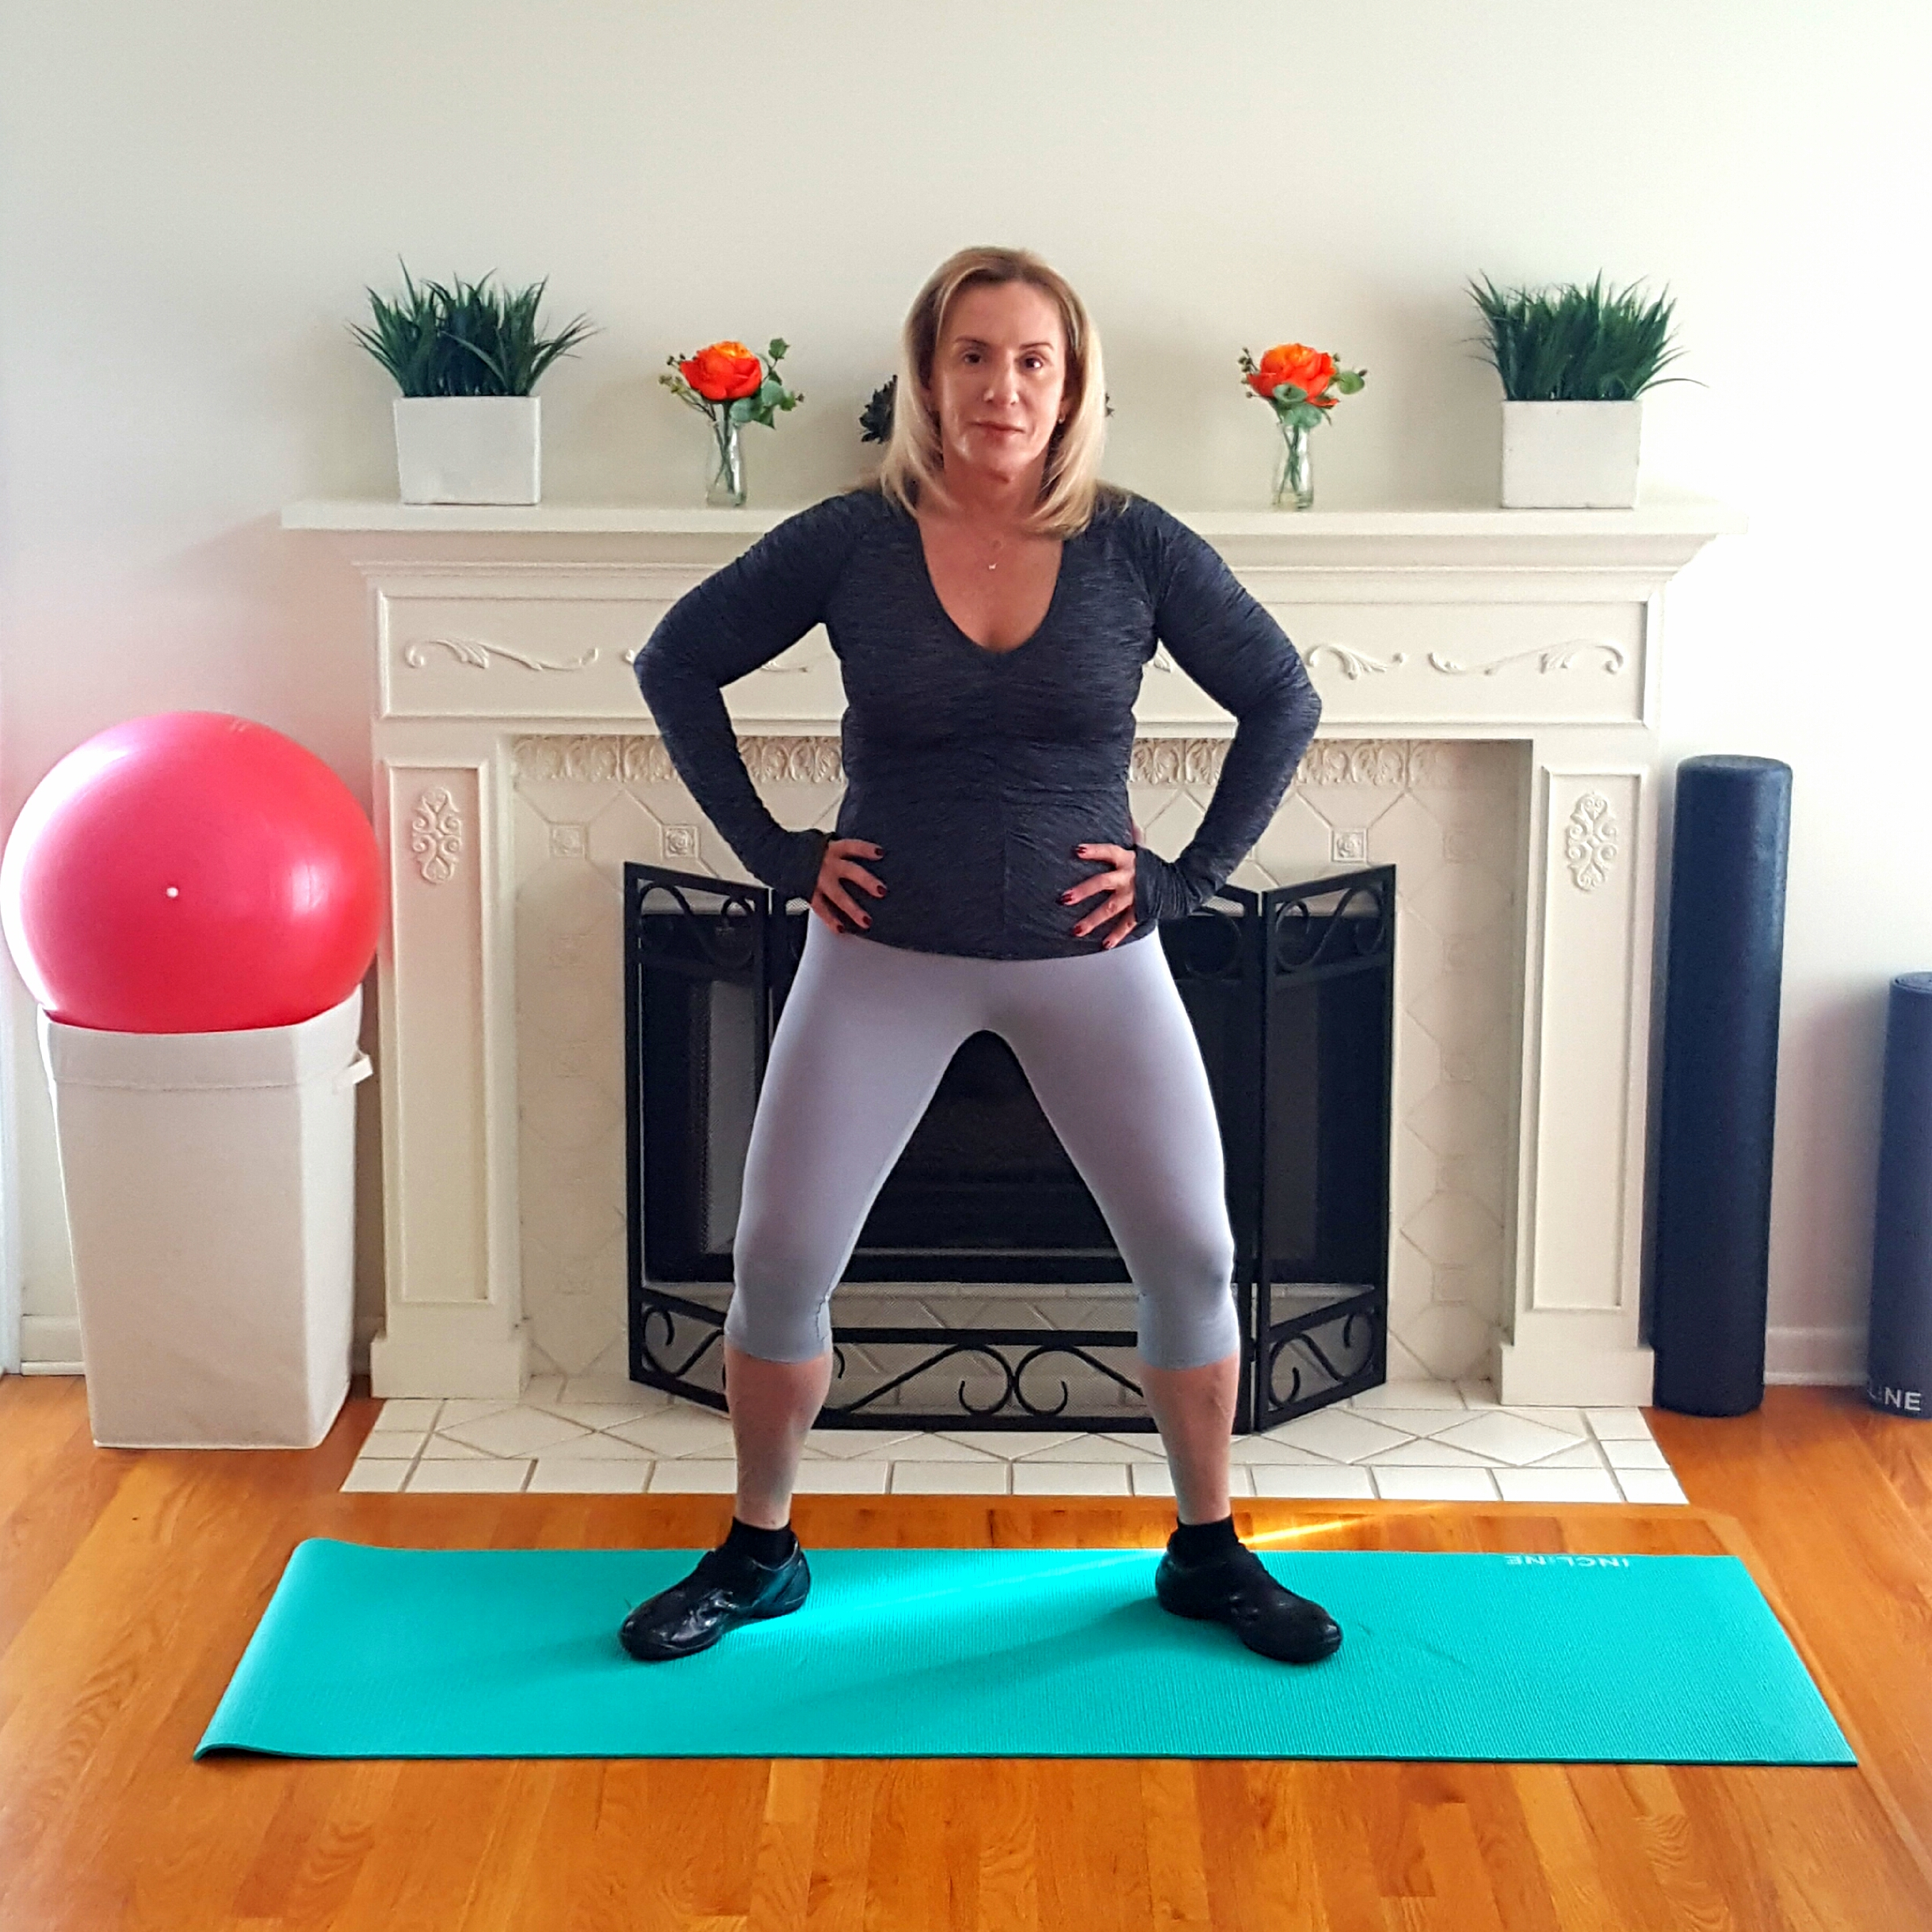 5 SIMPLE MOVES THAT WILL IMPROVE YOUR INNER THIGHS - followPhyllis